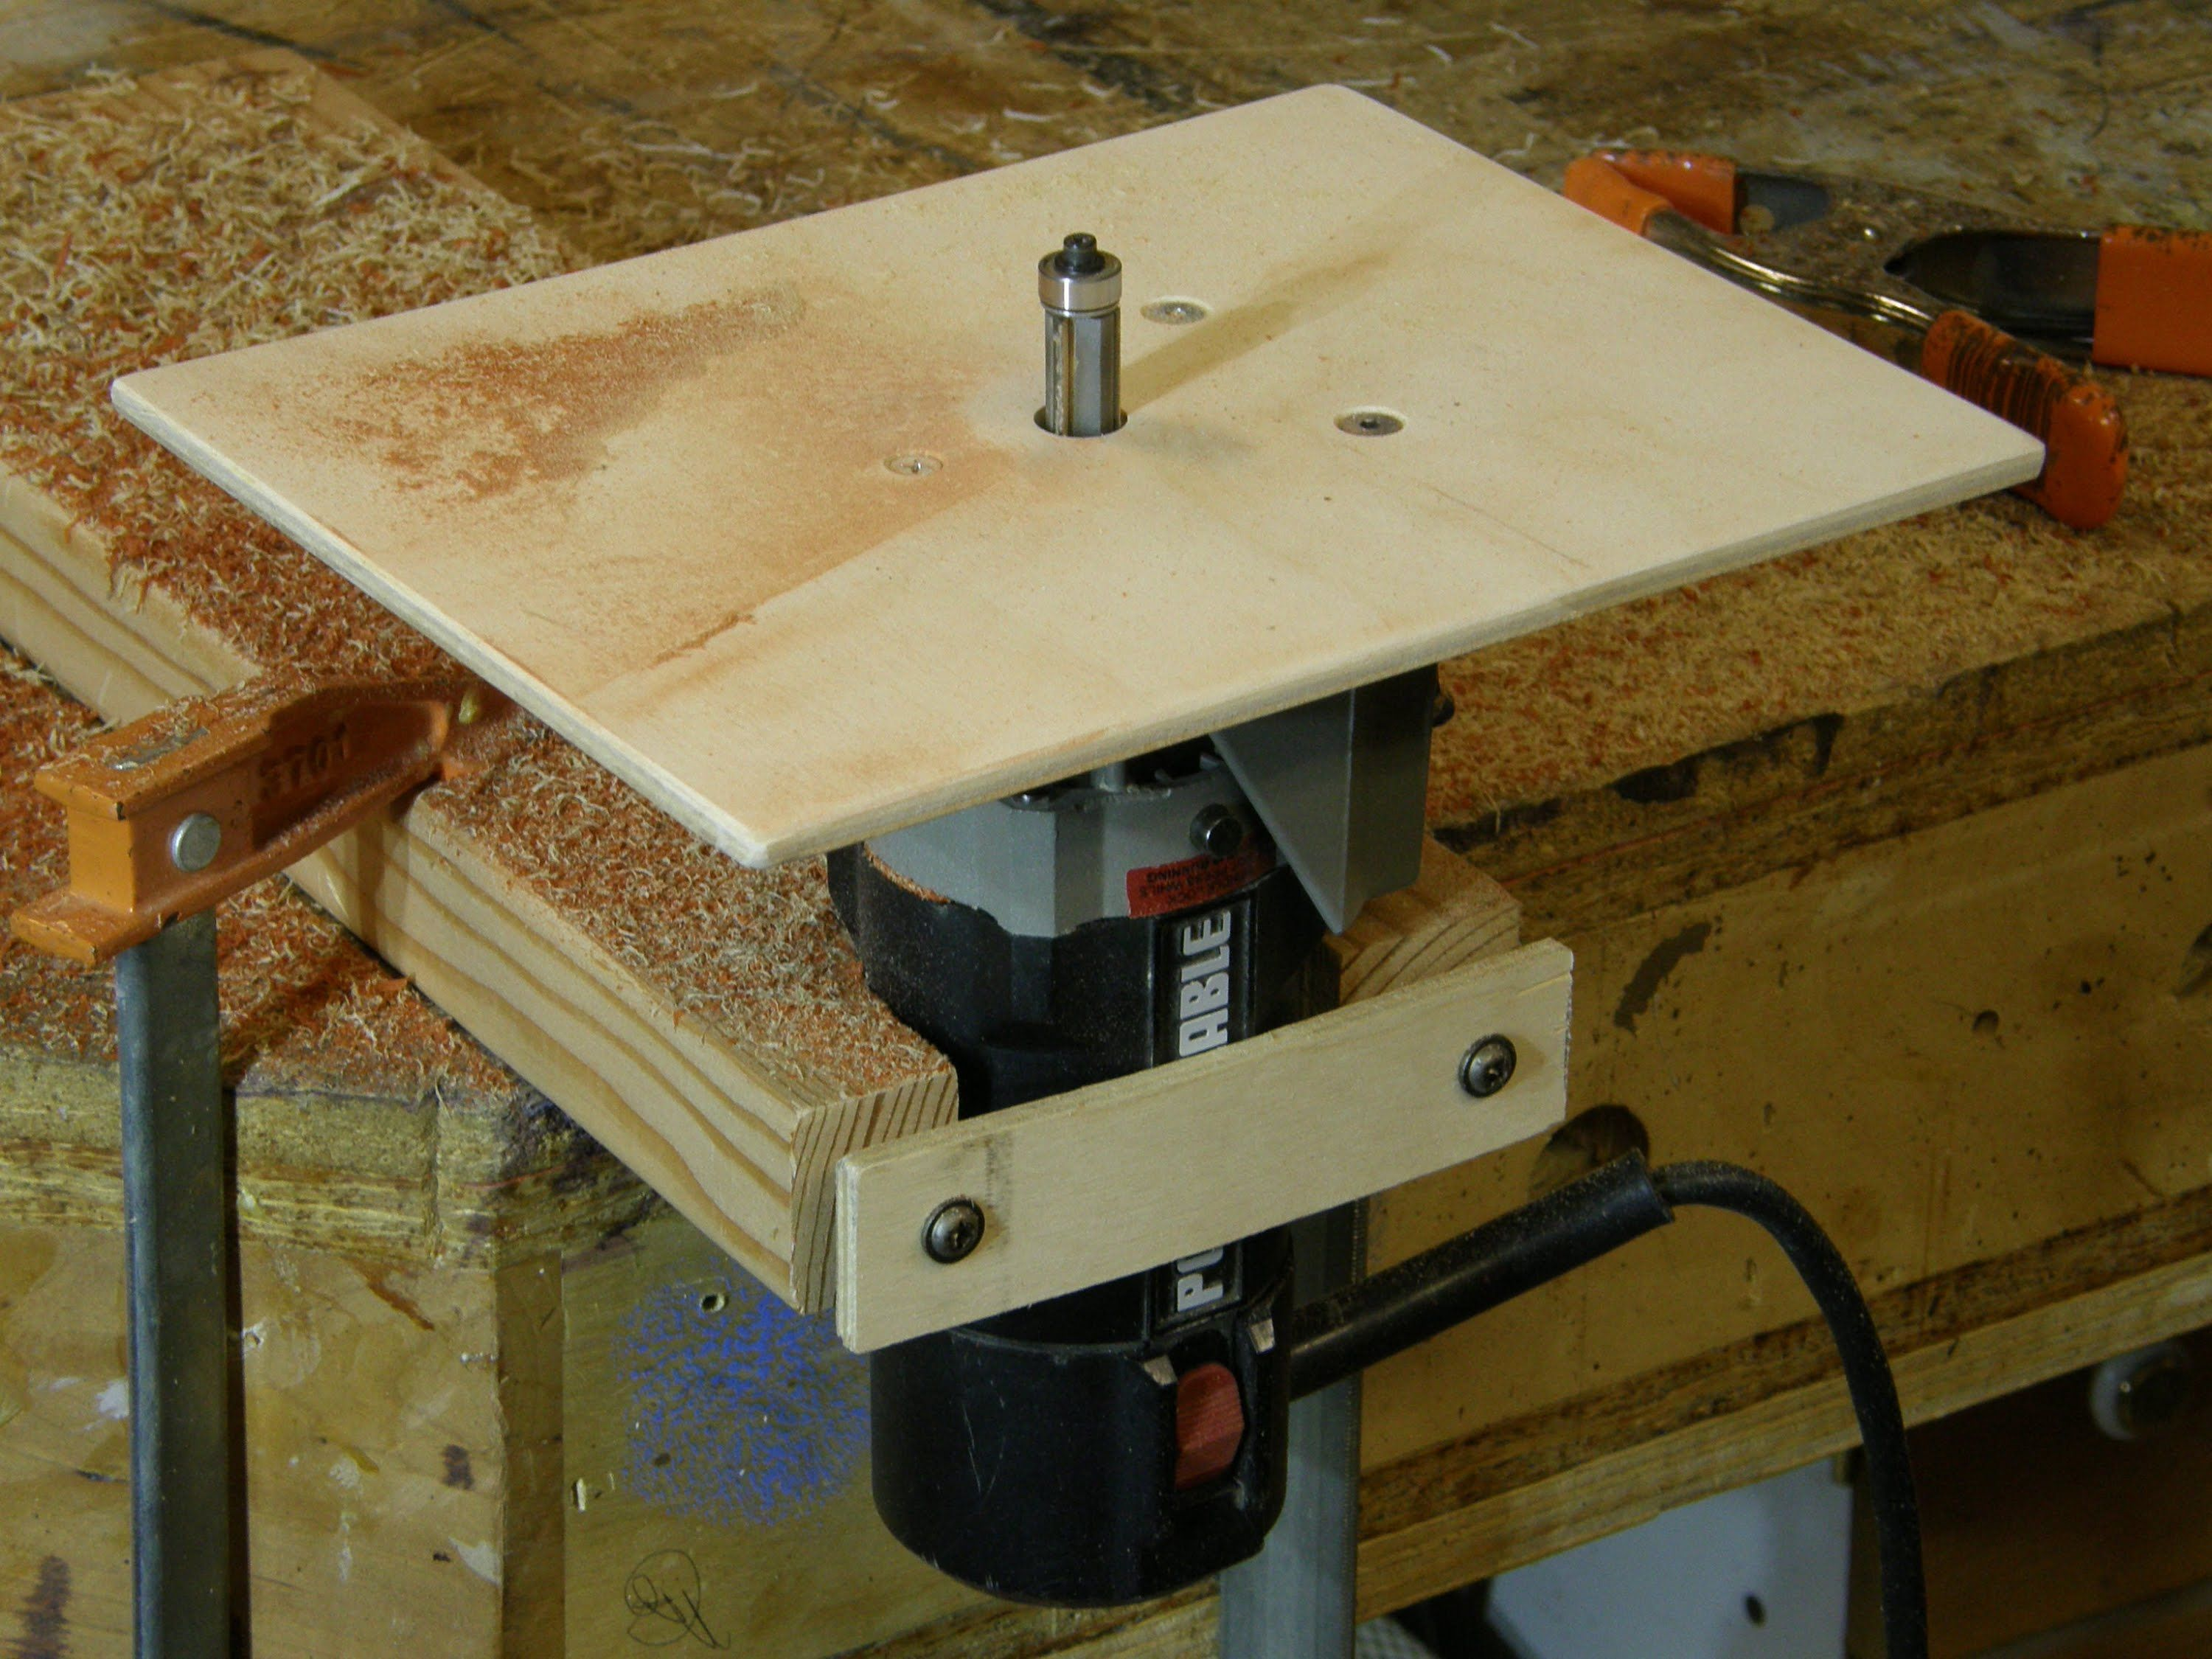 Diy Benchtop Router Table Possibly The World 39s Simplest Router Table To Make This